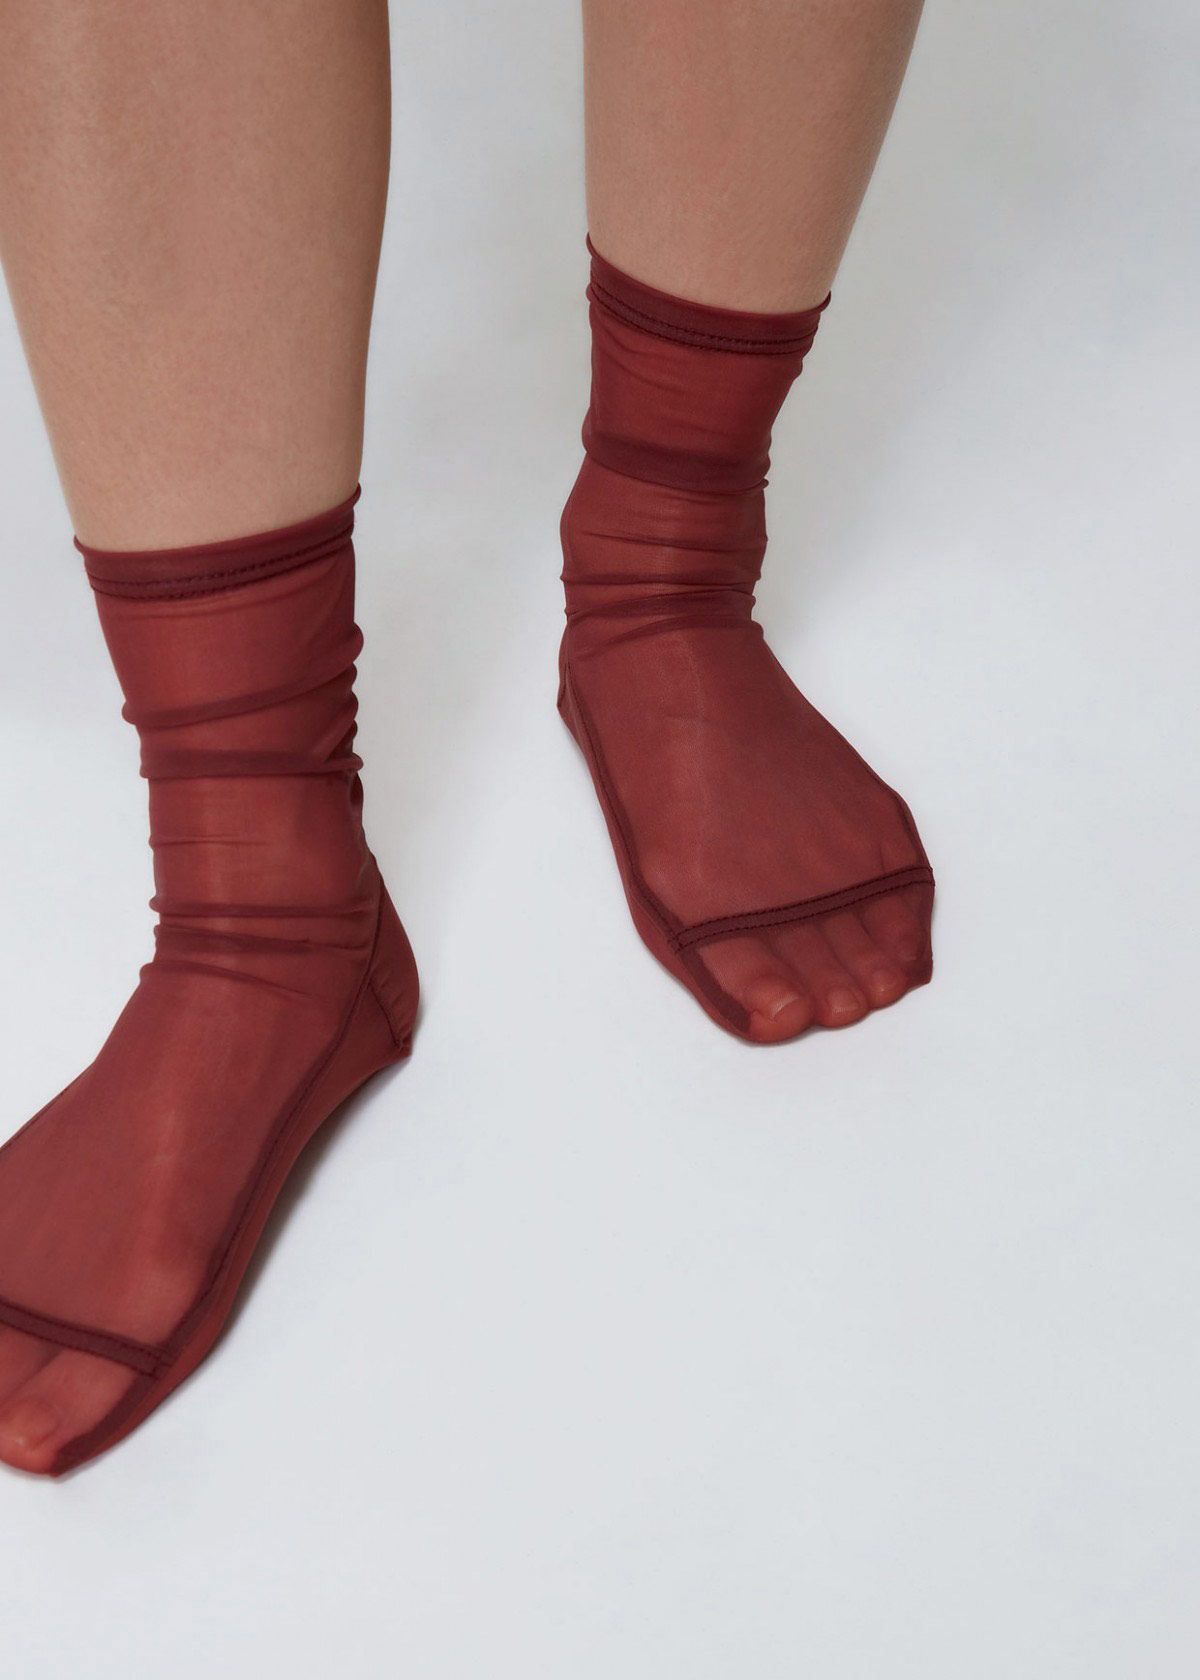 3b06e1e7ab5 How to Wear the Socks and Sandals Trend 2018